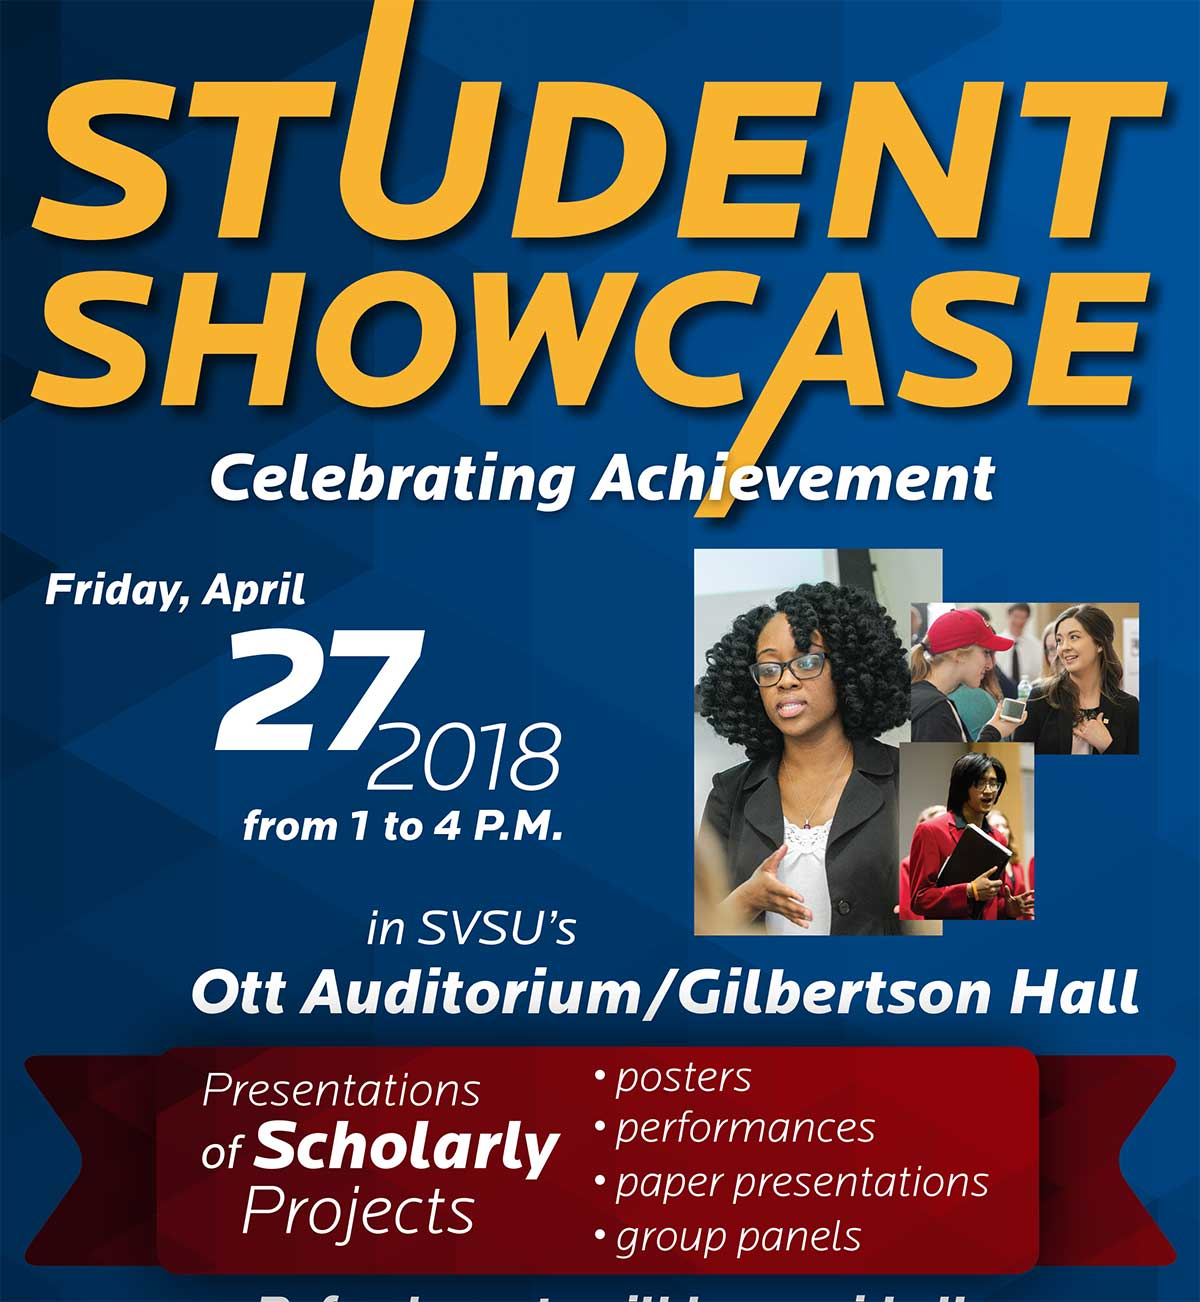 Student Showcase Poster celebrating student achievement.